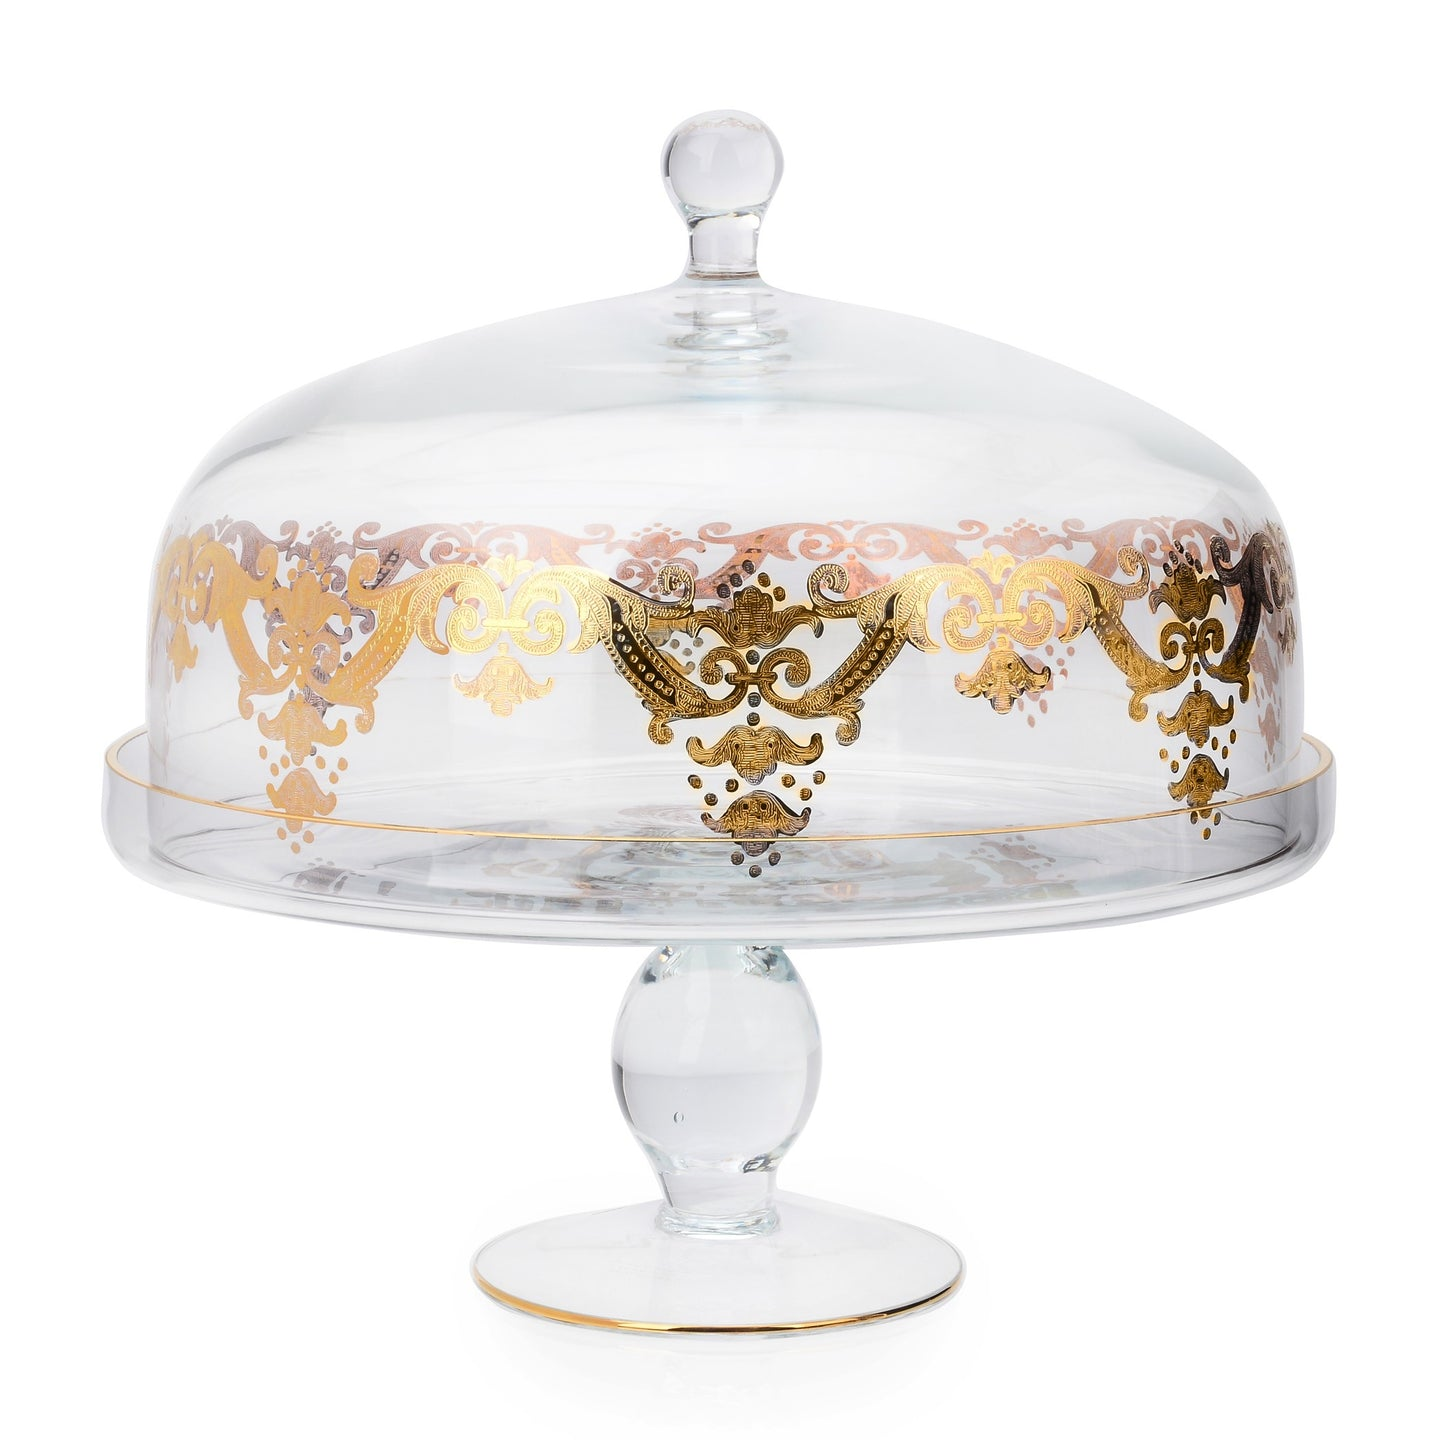 Classic Touch Decor Cake Dome Stand with 24k Gold Artwork